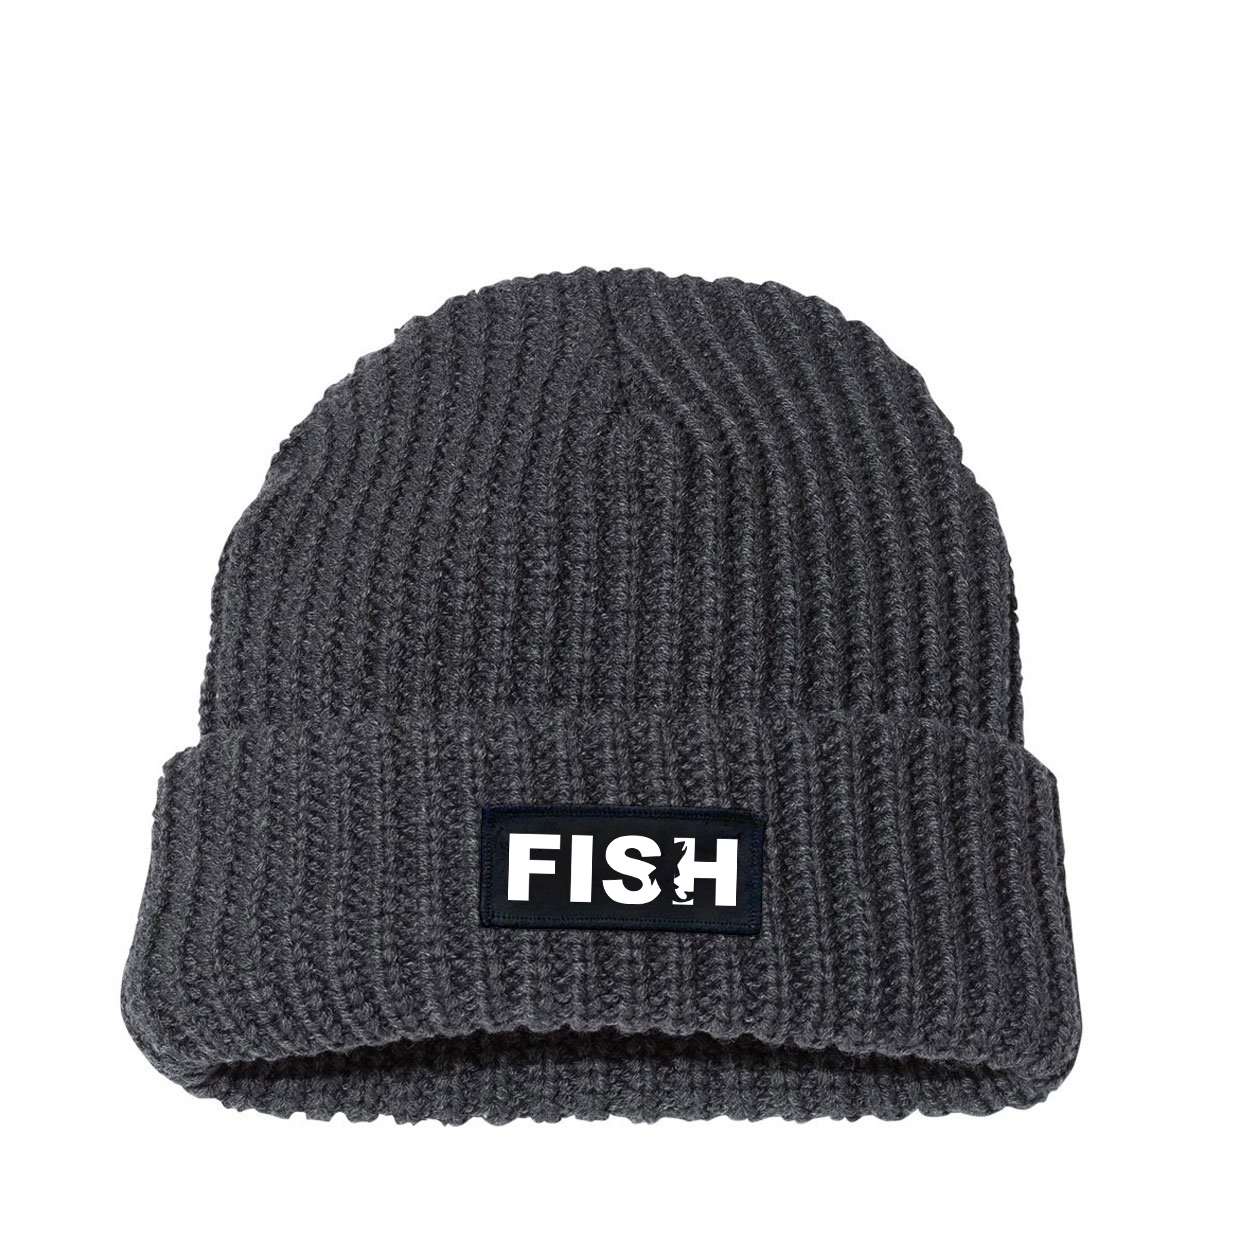 Fish Catch Logo Night Out Woven Patch Roll Up Jumbo Chunky Knit Beanie Charcoal (White Logo)